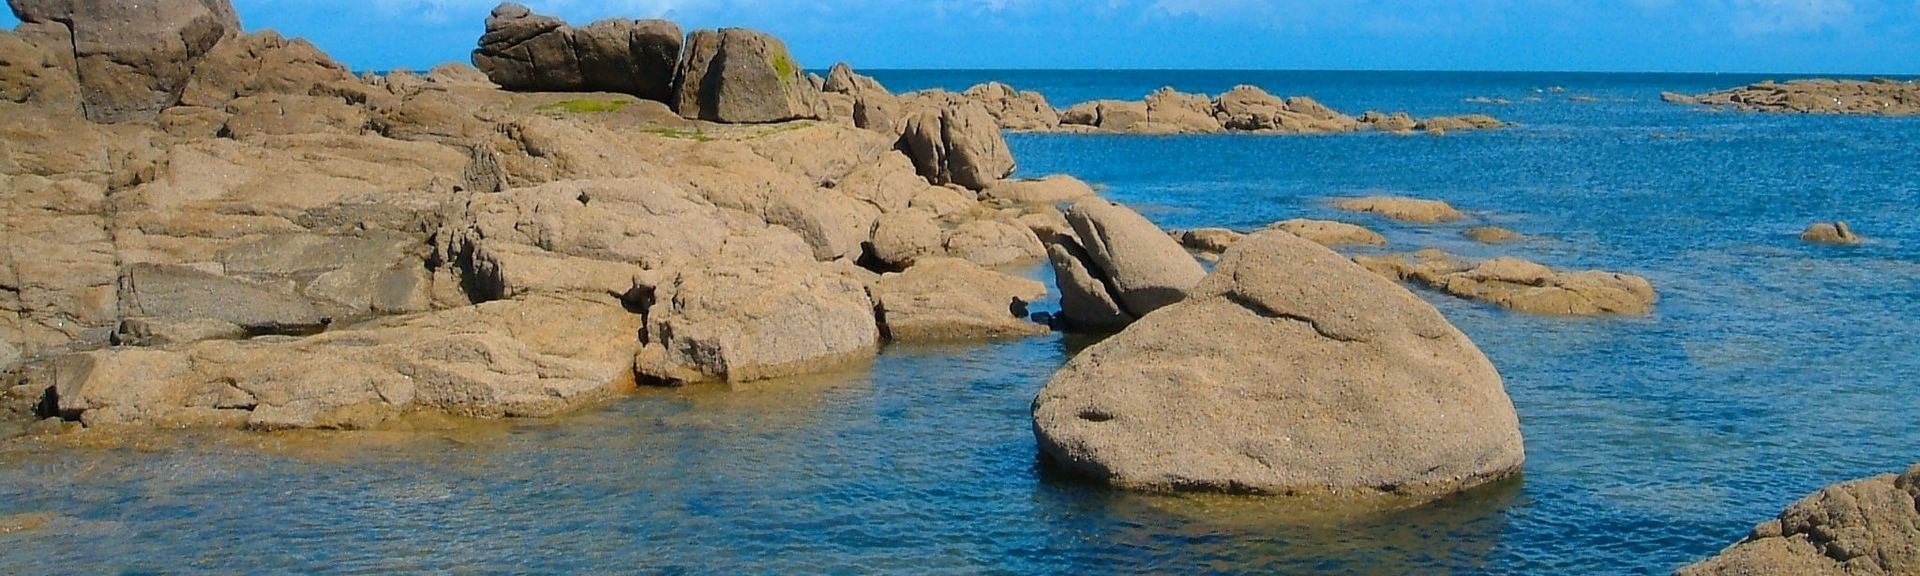 Canisy, Normandie, Frankreich